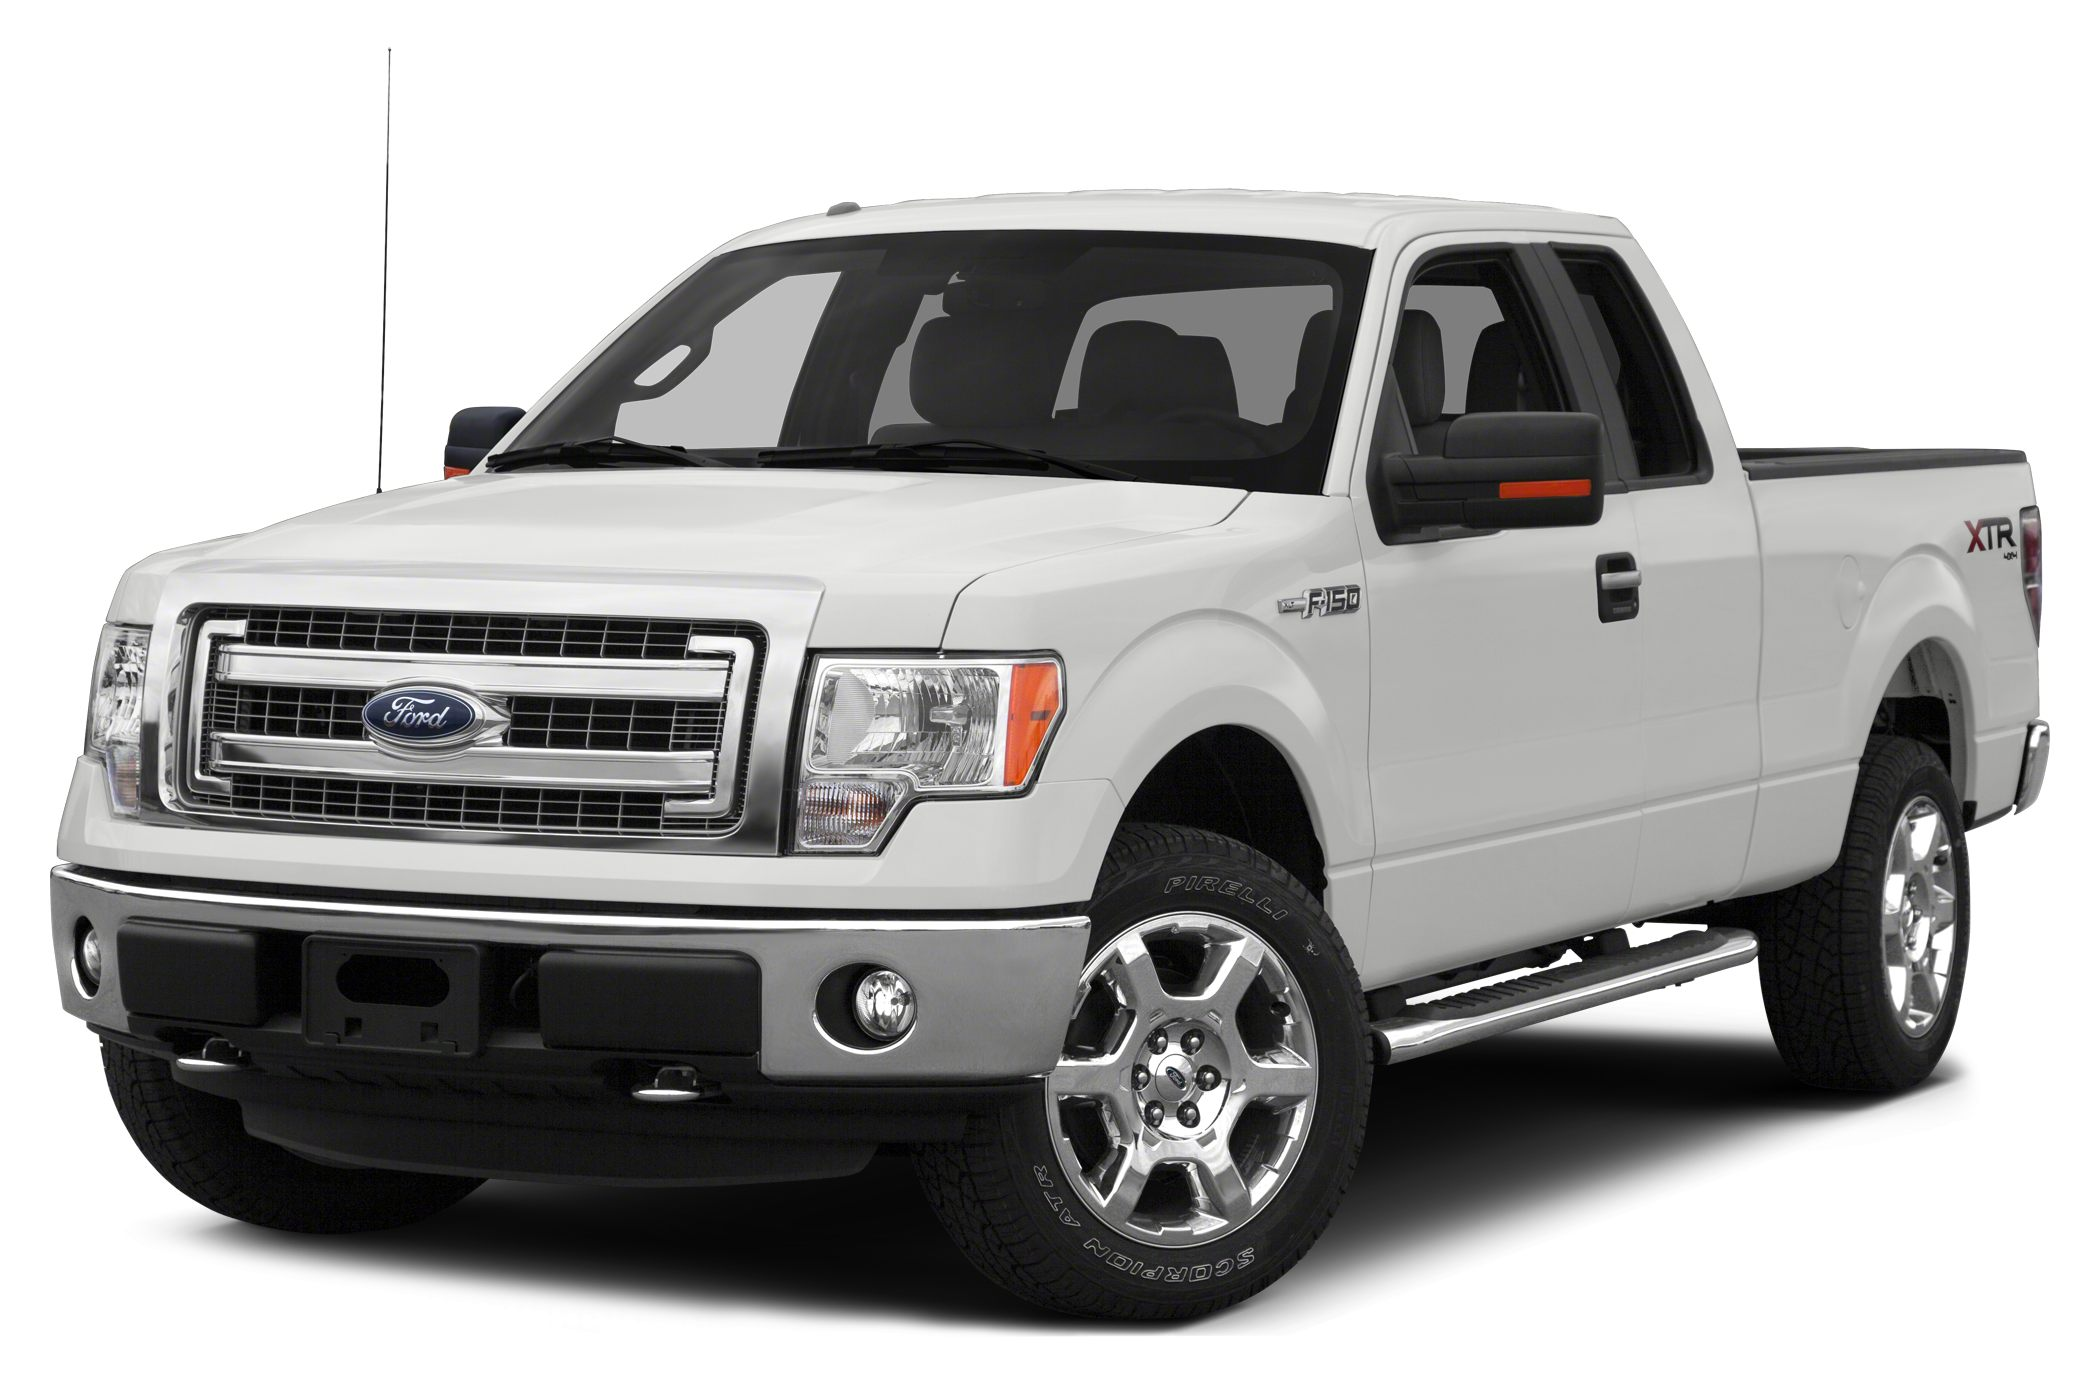 2014 Ford F150 Lariat Crew Cab Pickup for sale in San Antonio for $35,991 with 24,430 miles